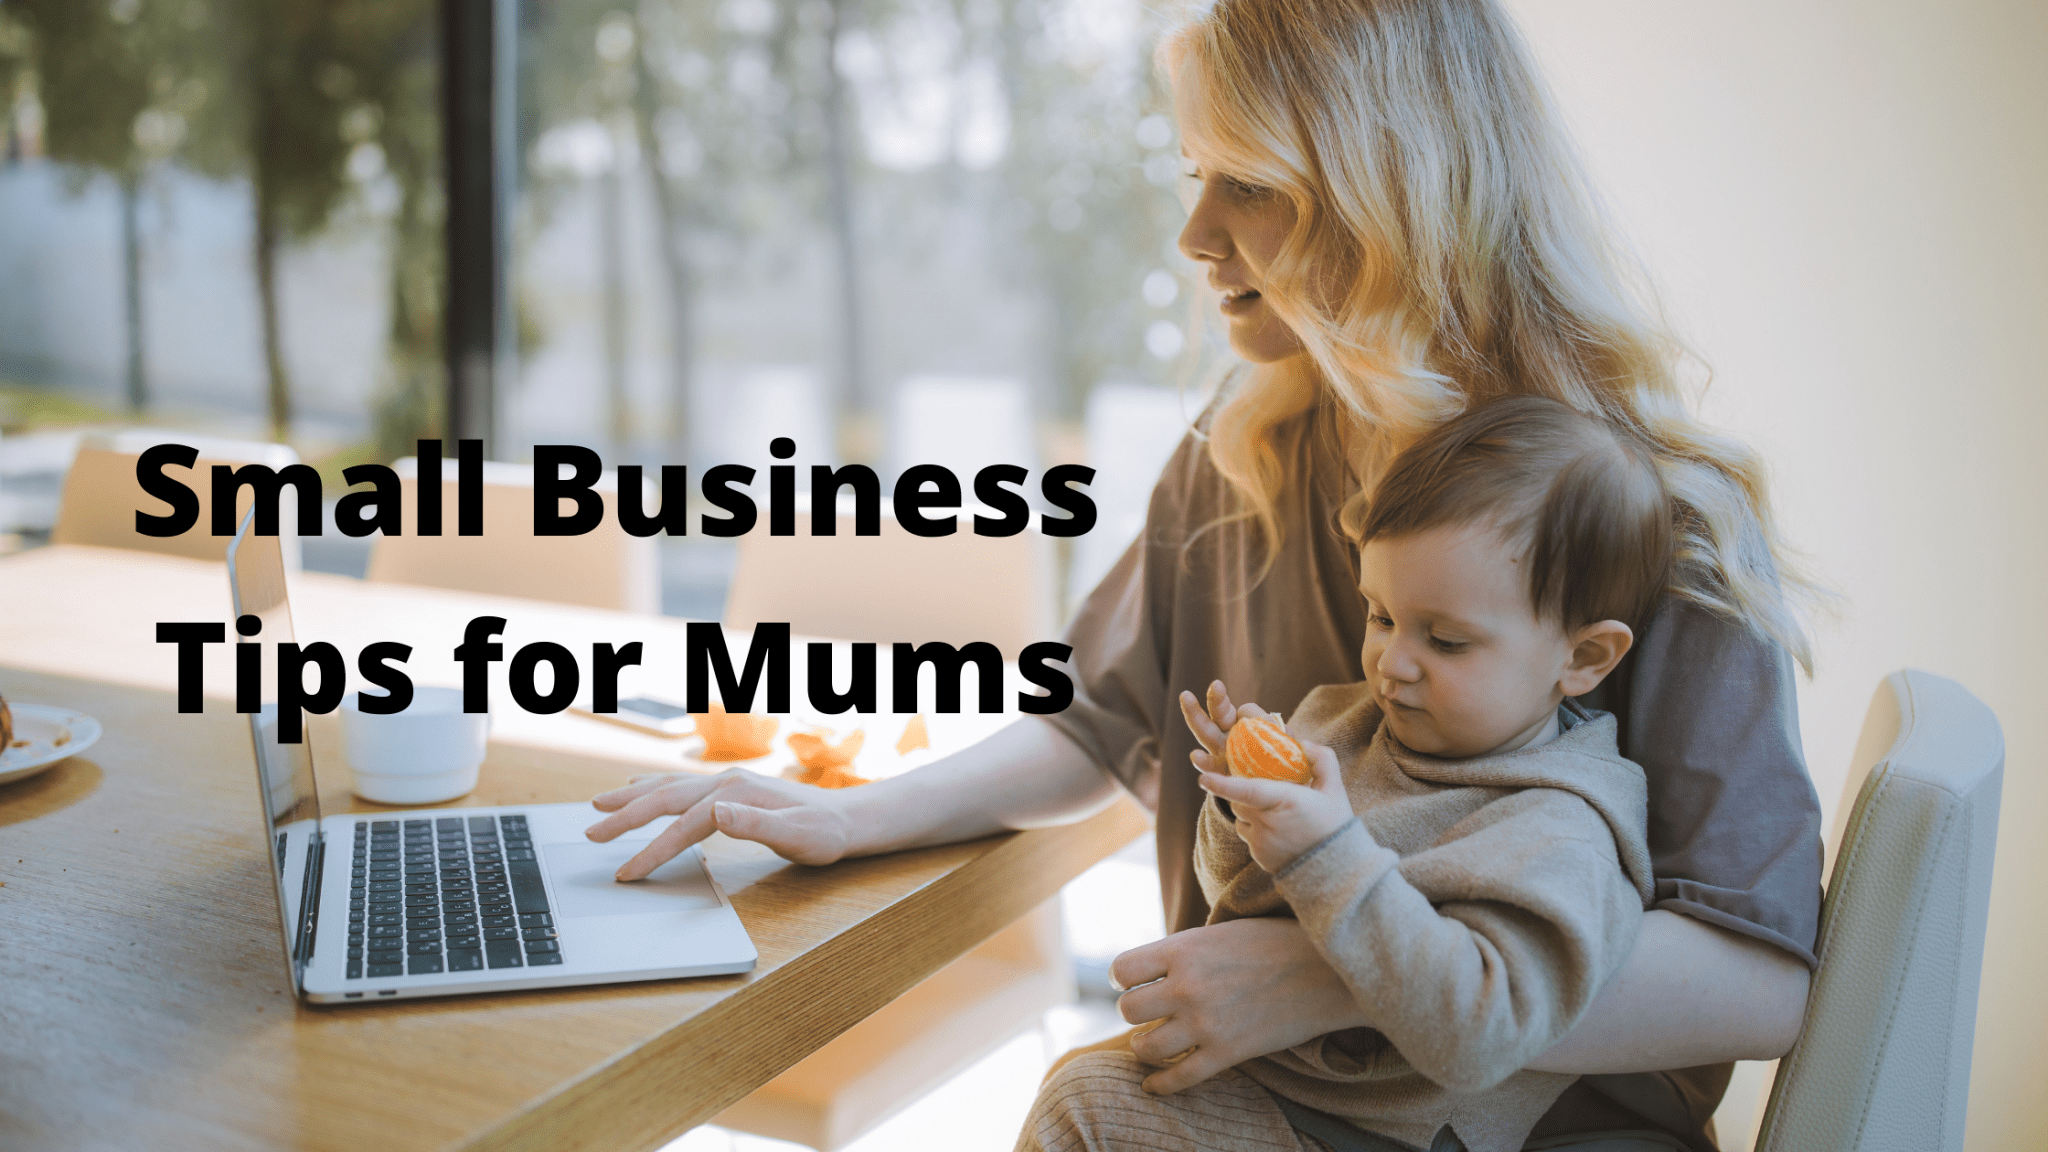 Small Business Tips for Mums